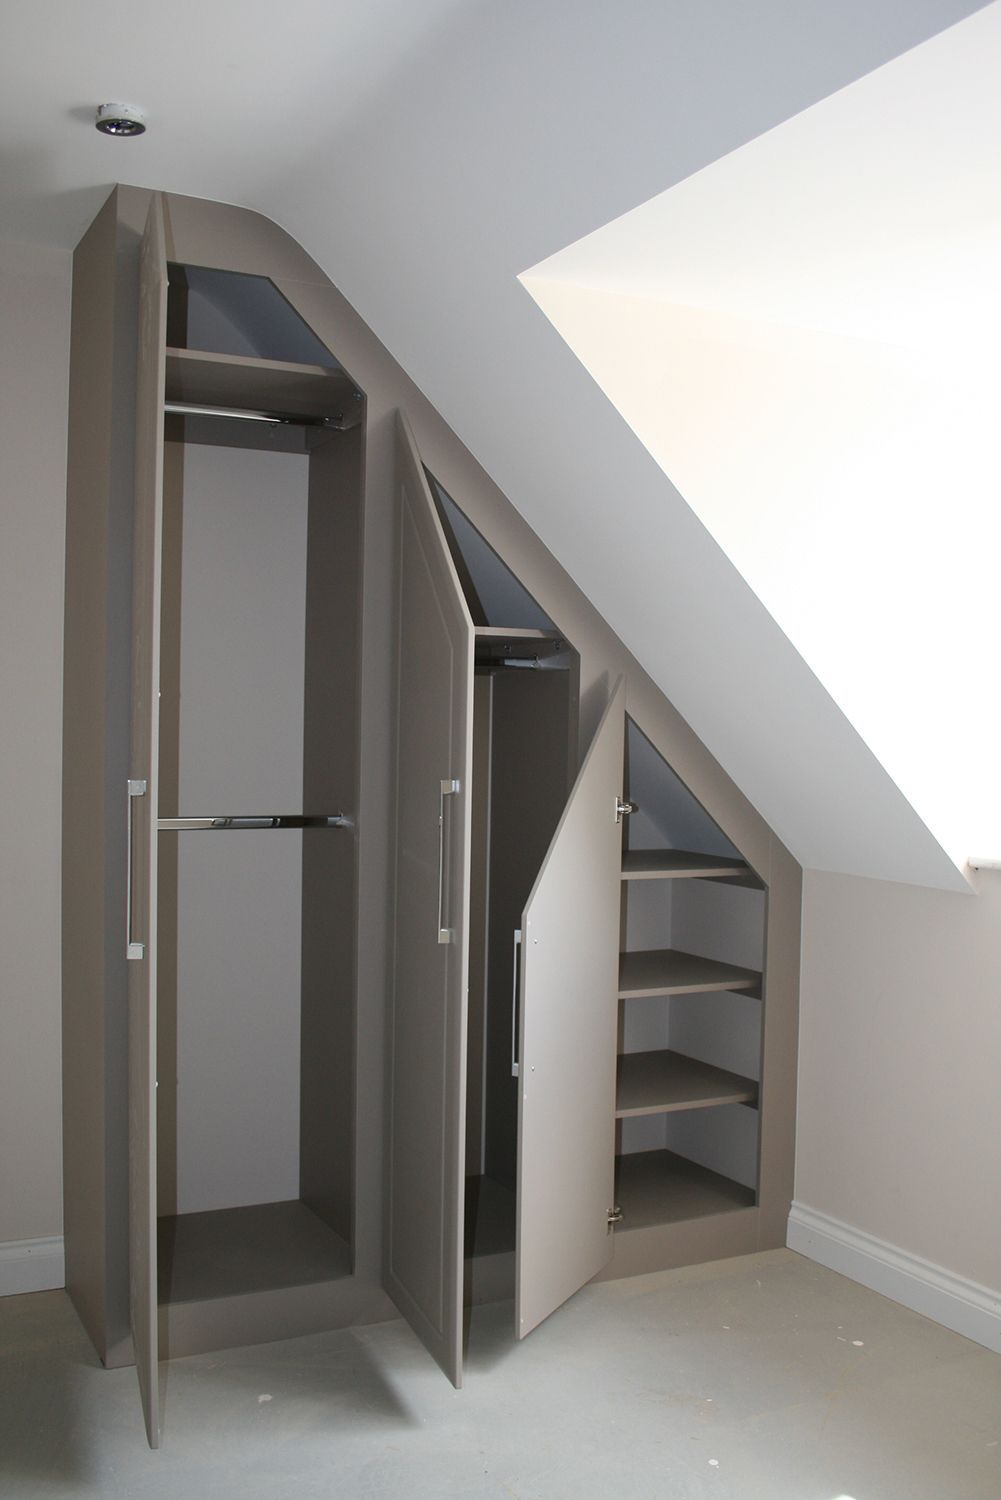 Fitted Furniture For Loft Conversions and Angled Ceilings - Furniture By Design